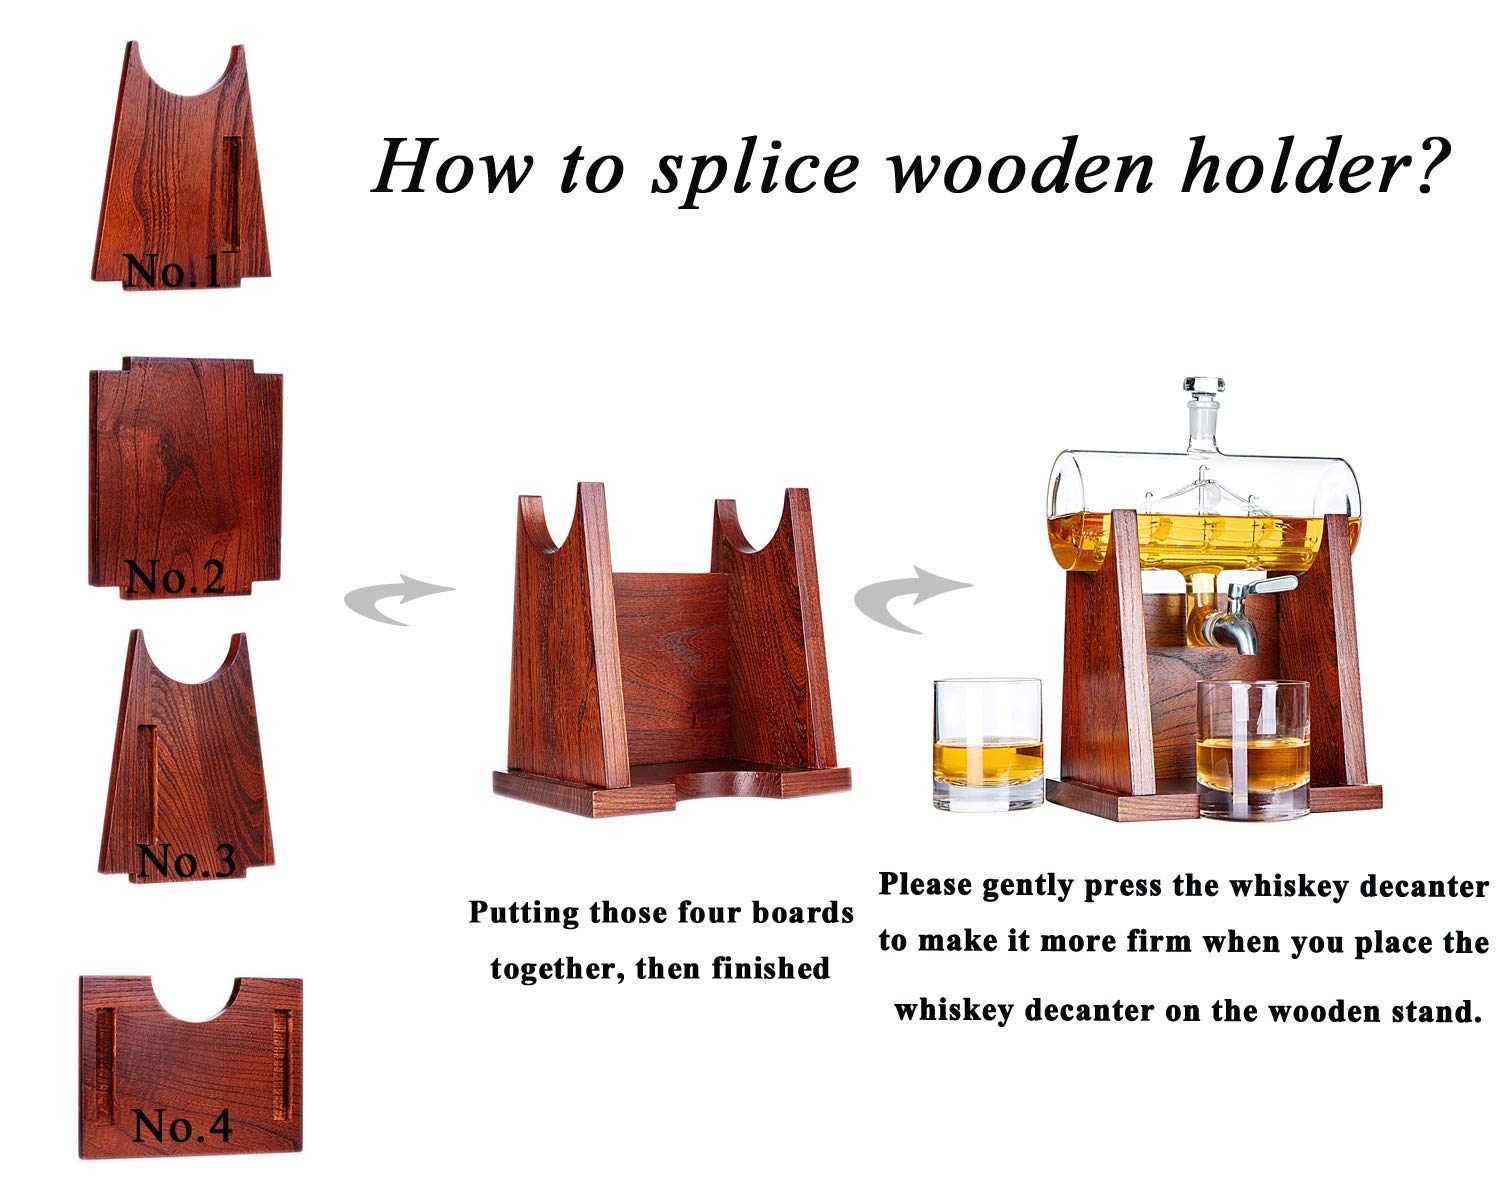 Jillmo Whiskey Decanter Set with 2 Glasses - 1250ml & 42 oz Lead Free Barrel Ship Dispenser with Detachable Wooden Holder Gift for Liquor, Scotch, Bourbon, Vodka, Whisky, Rum & Alcohol by Jillmo (Image #6)